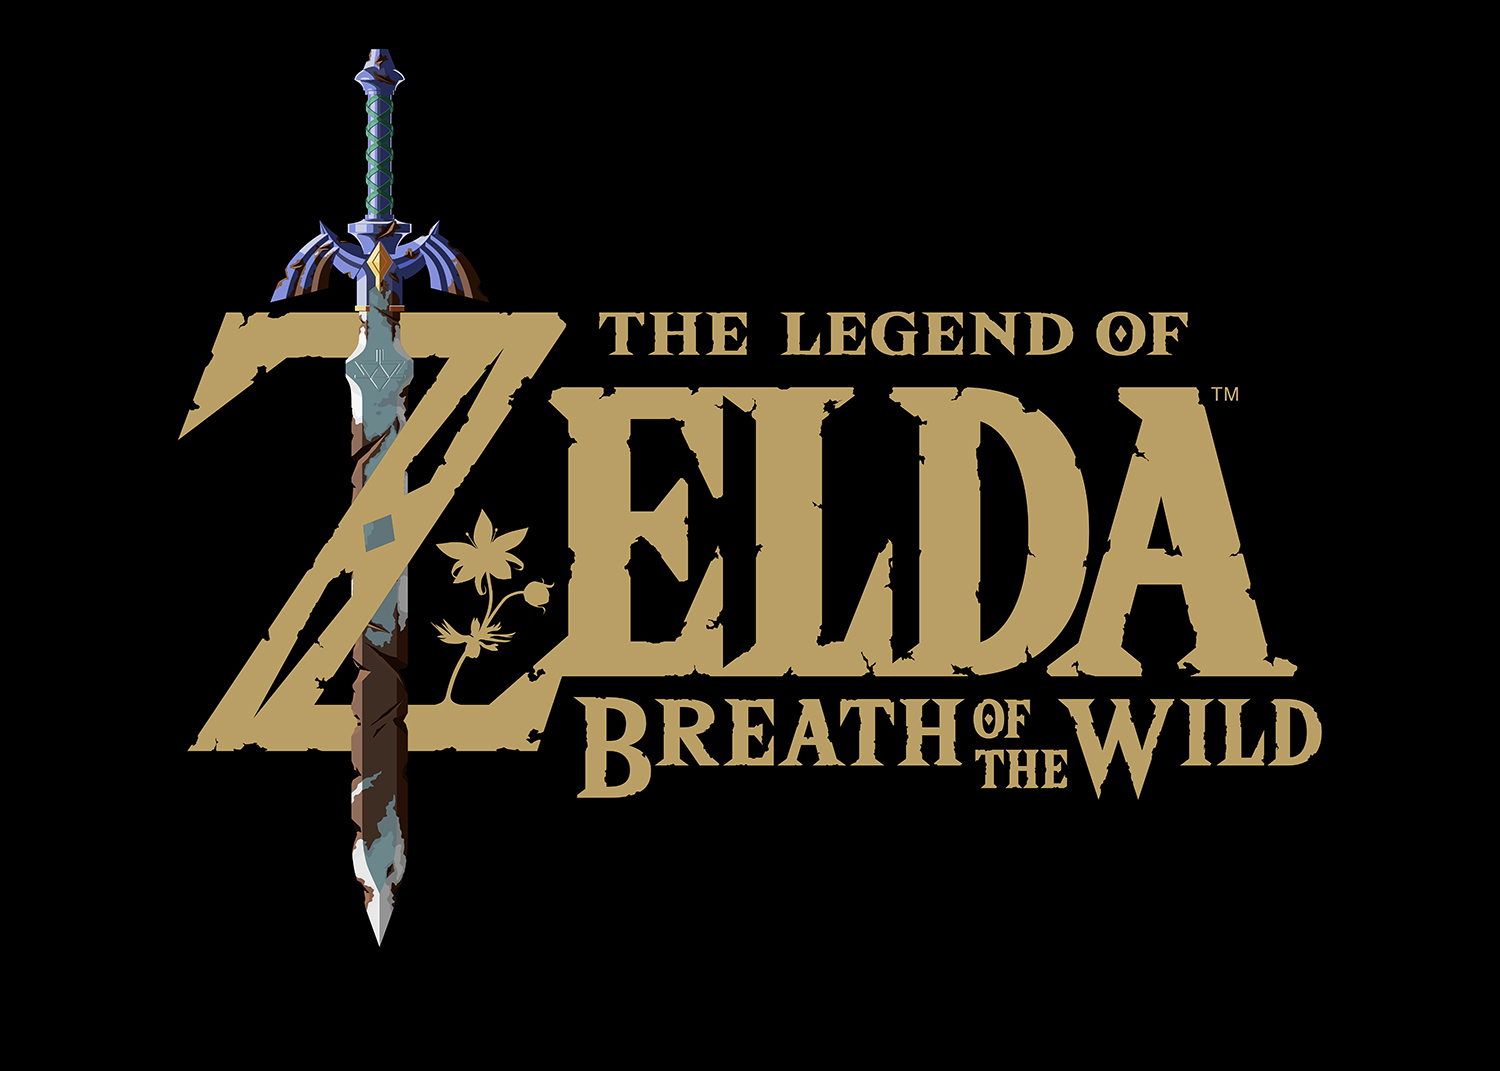 Логотип игры The Legend of Zelda: Breath of the Wild